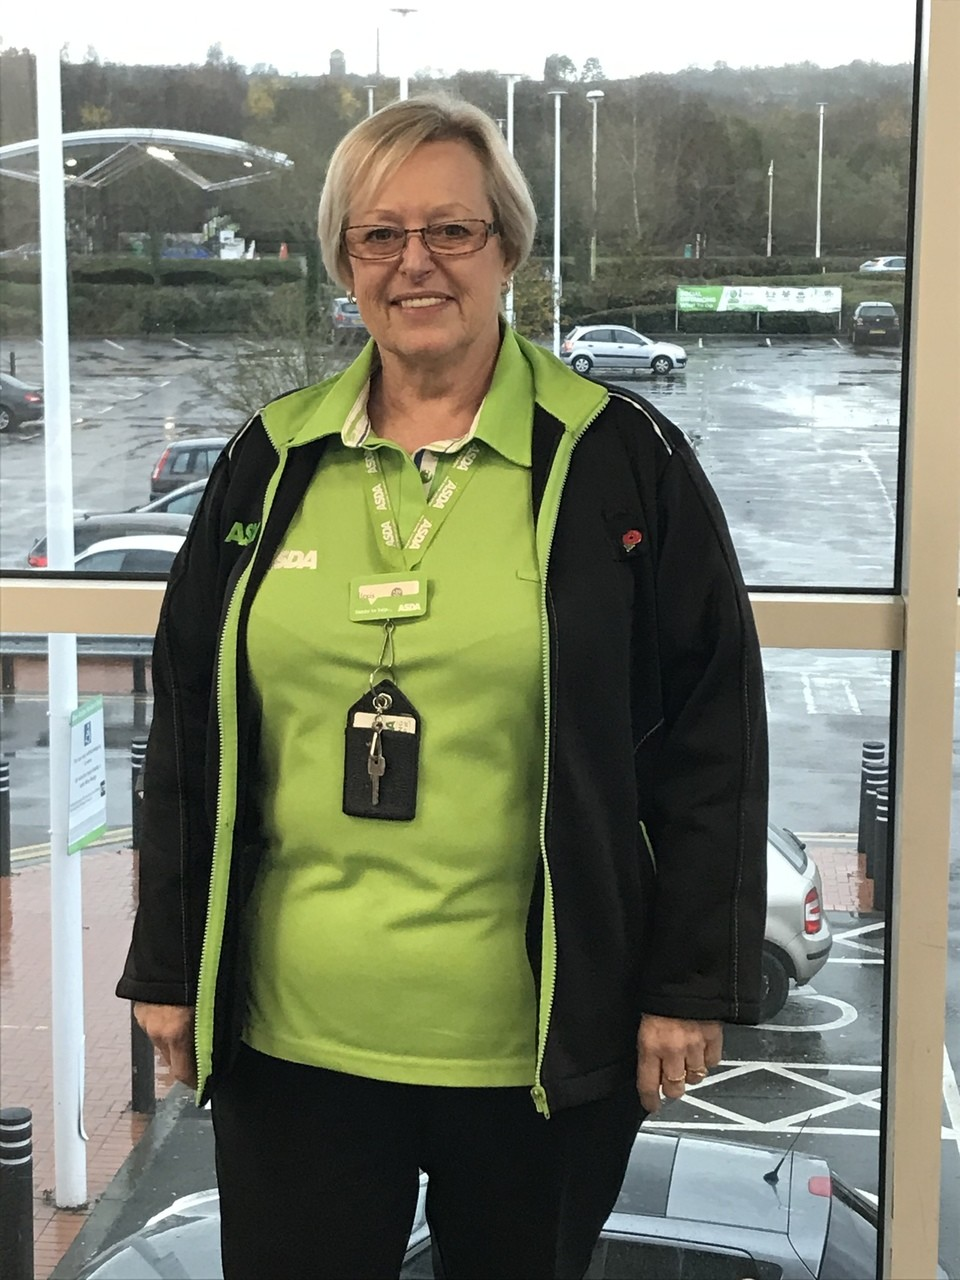 20 years' service for Alexis | Asda Cardiff Bay